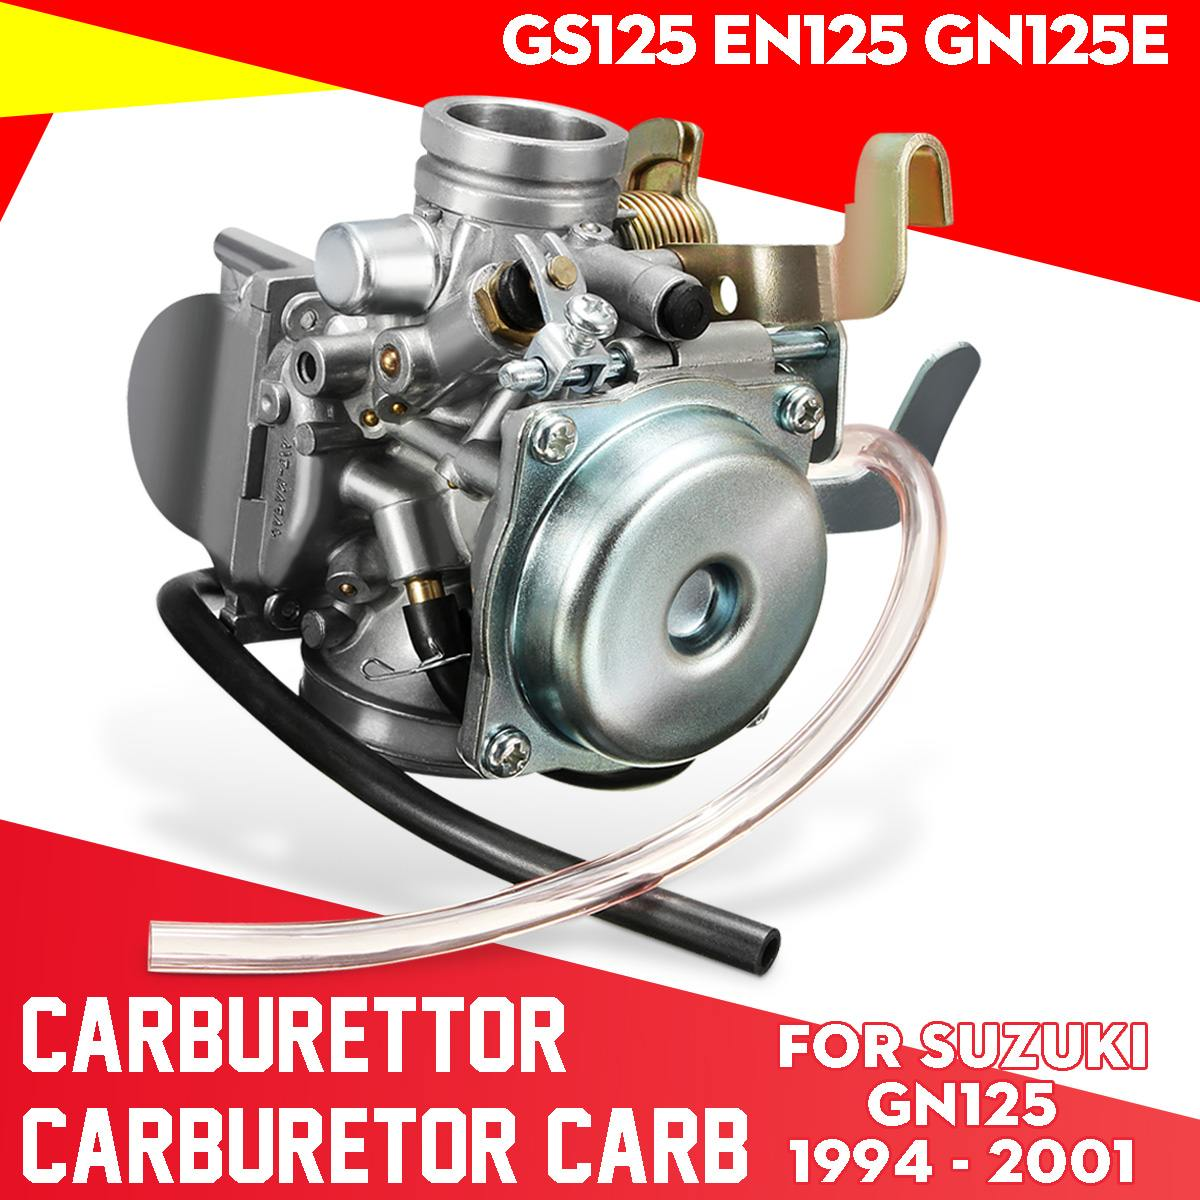 Motorcycle Carburettor Carburetor Carb For Suzuki GN125 1994 - 2001 GS125 EN125 GN125E image